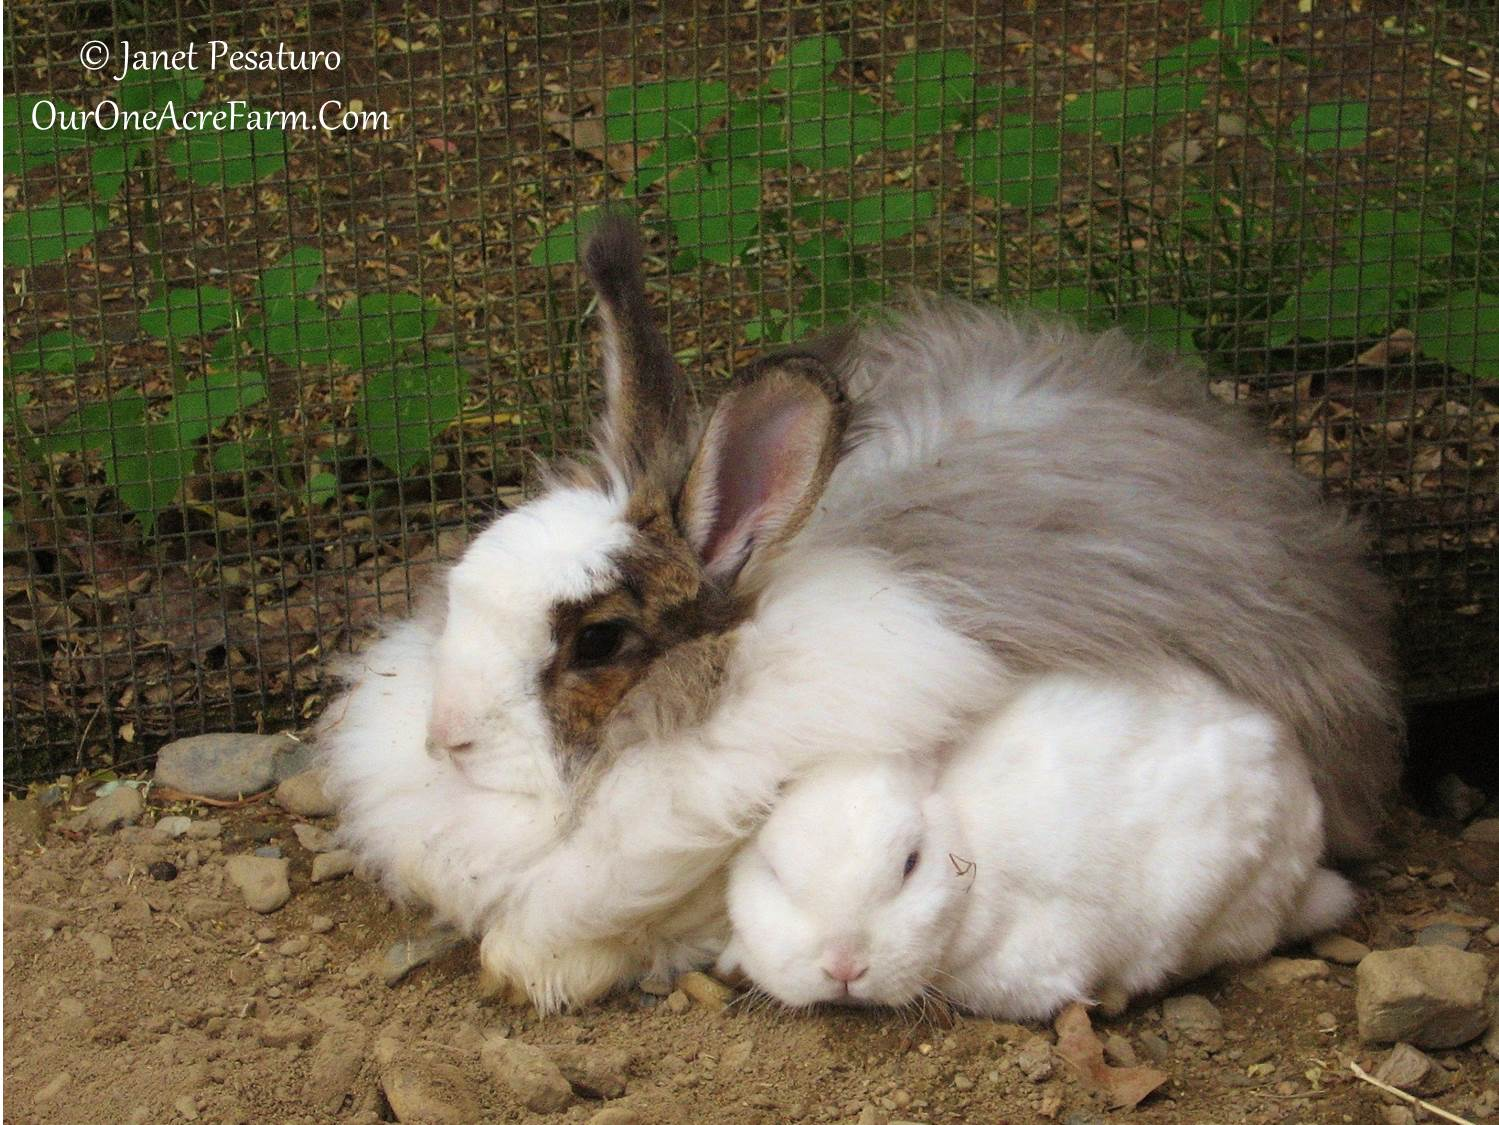 Backyard Farming Animals : We had these 2 rabbits for years I had the fur from the angora rabbit